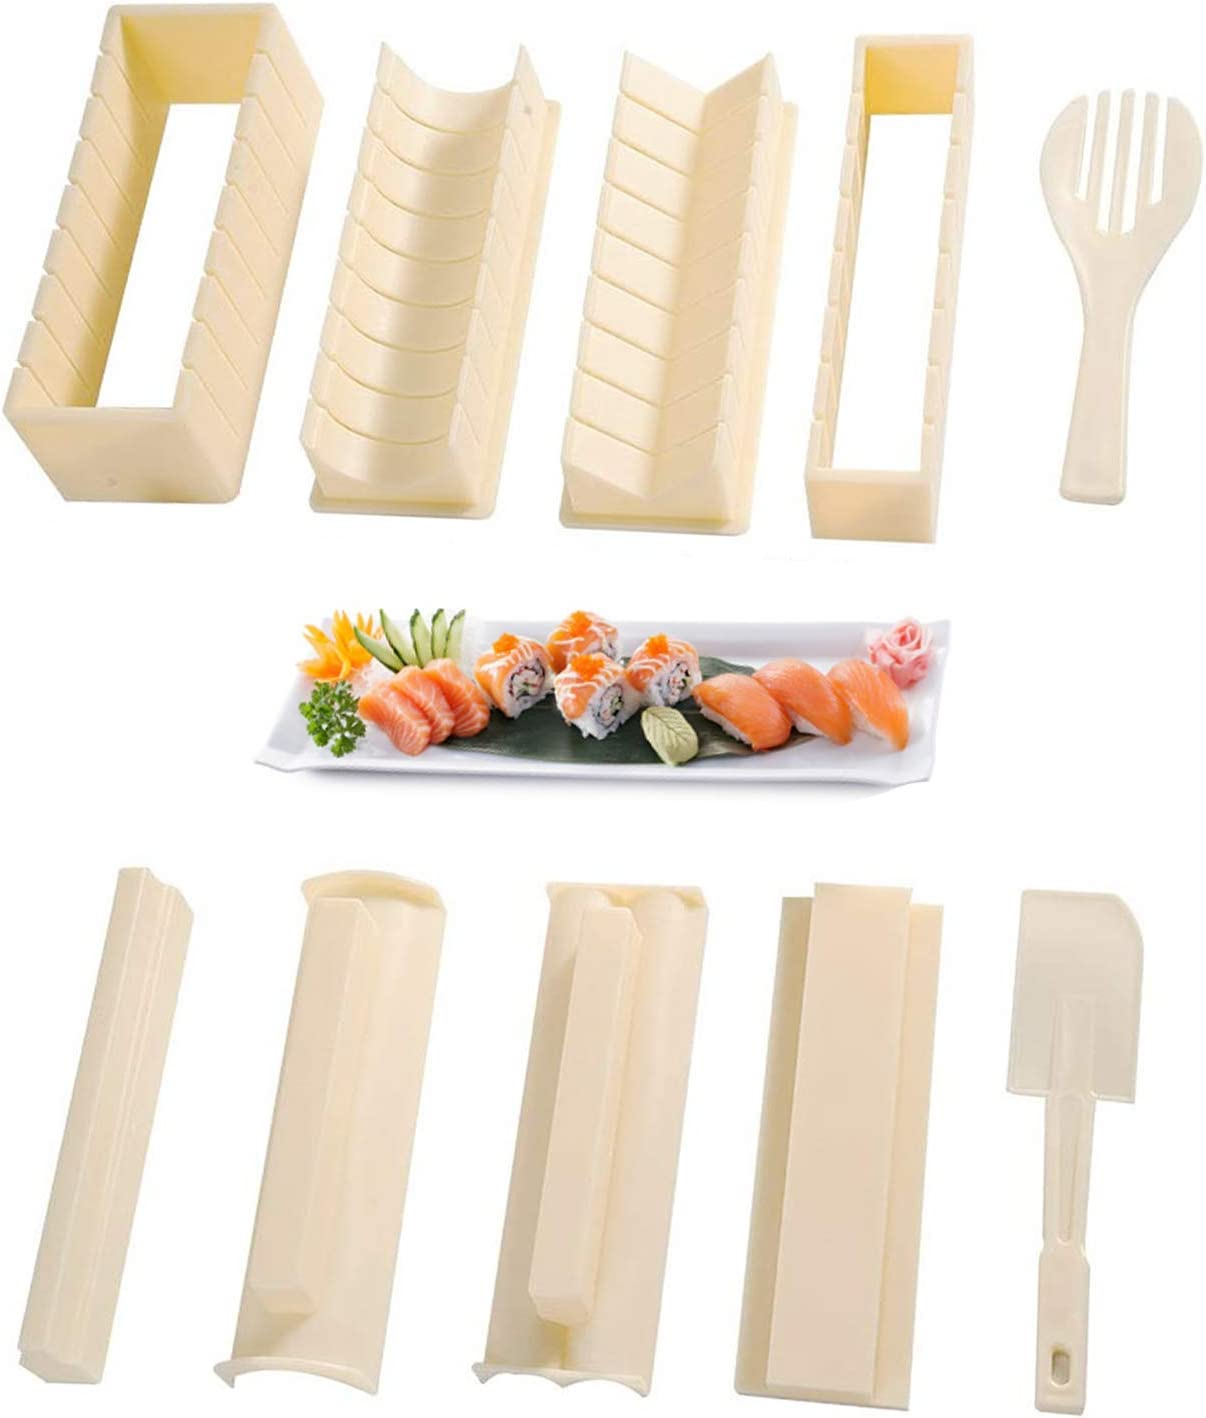 Sushi Making Kit for Beginners Complete Sushi Set 10 Pieces Plastic Sushi Maker Tool with 8 Sushi Roll Mold Shapes DIY Home Sushi Tool Sushi Rolls